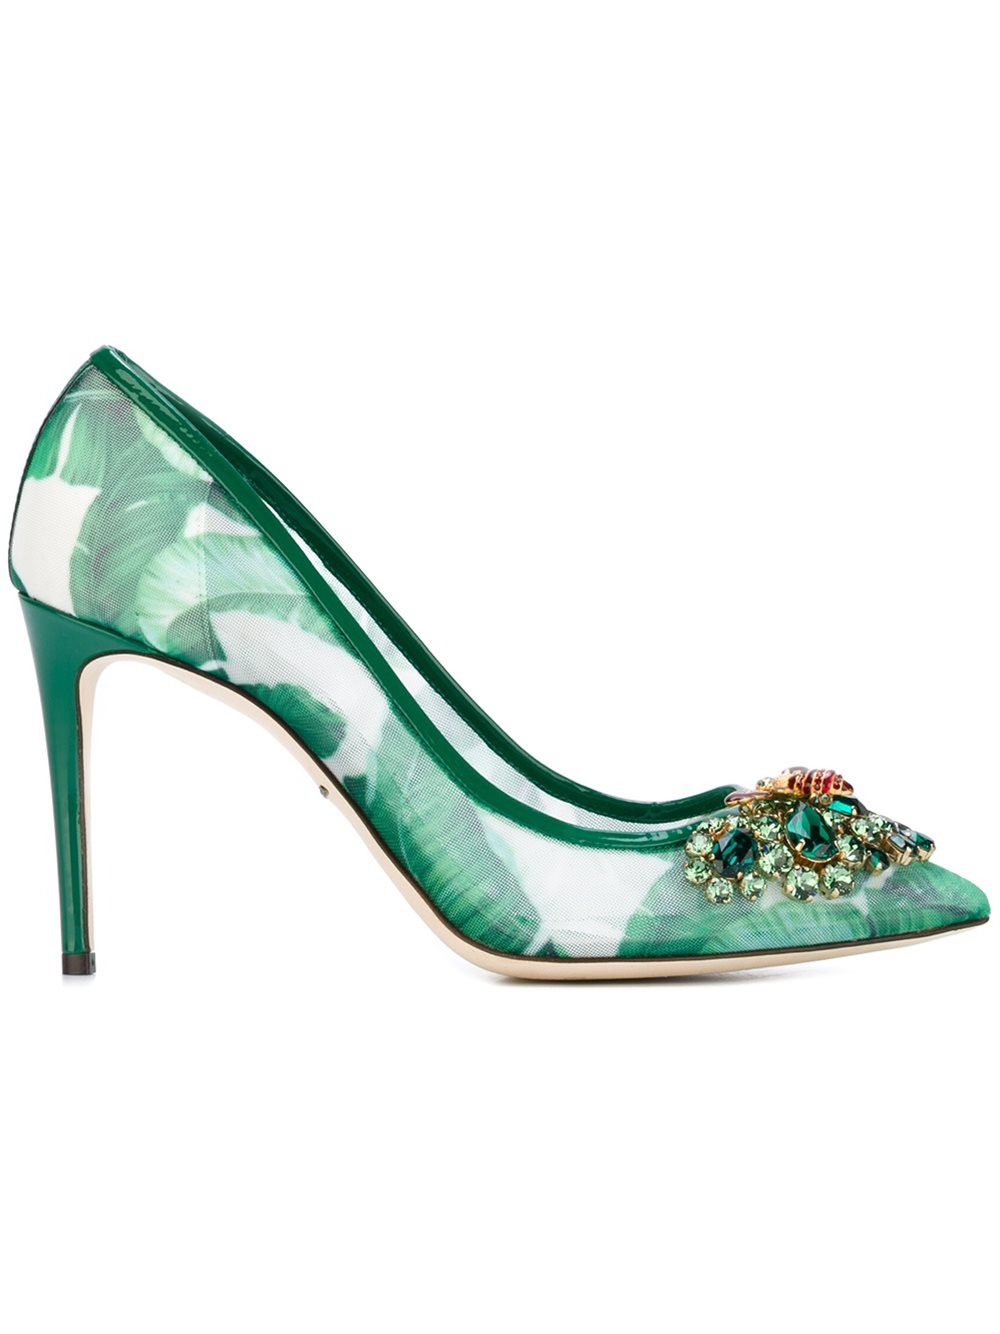 Dolce & Gabbana Embellished banana leaf printed pumps, FarFetch.com